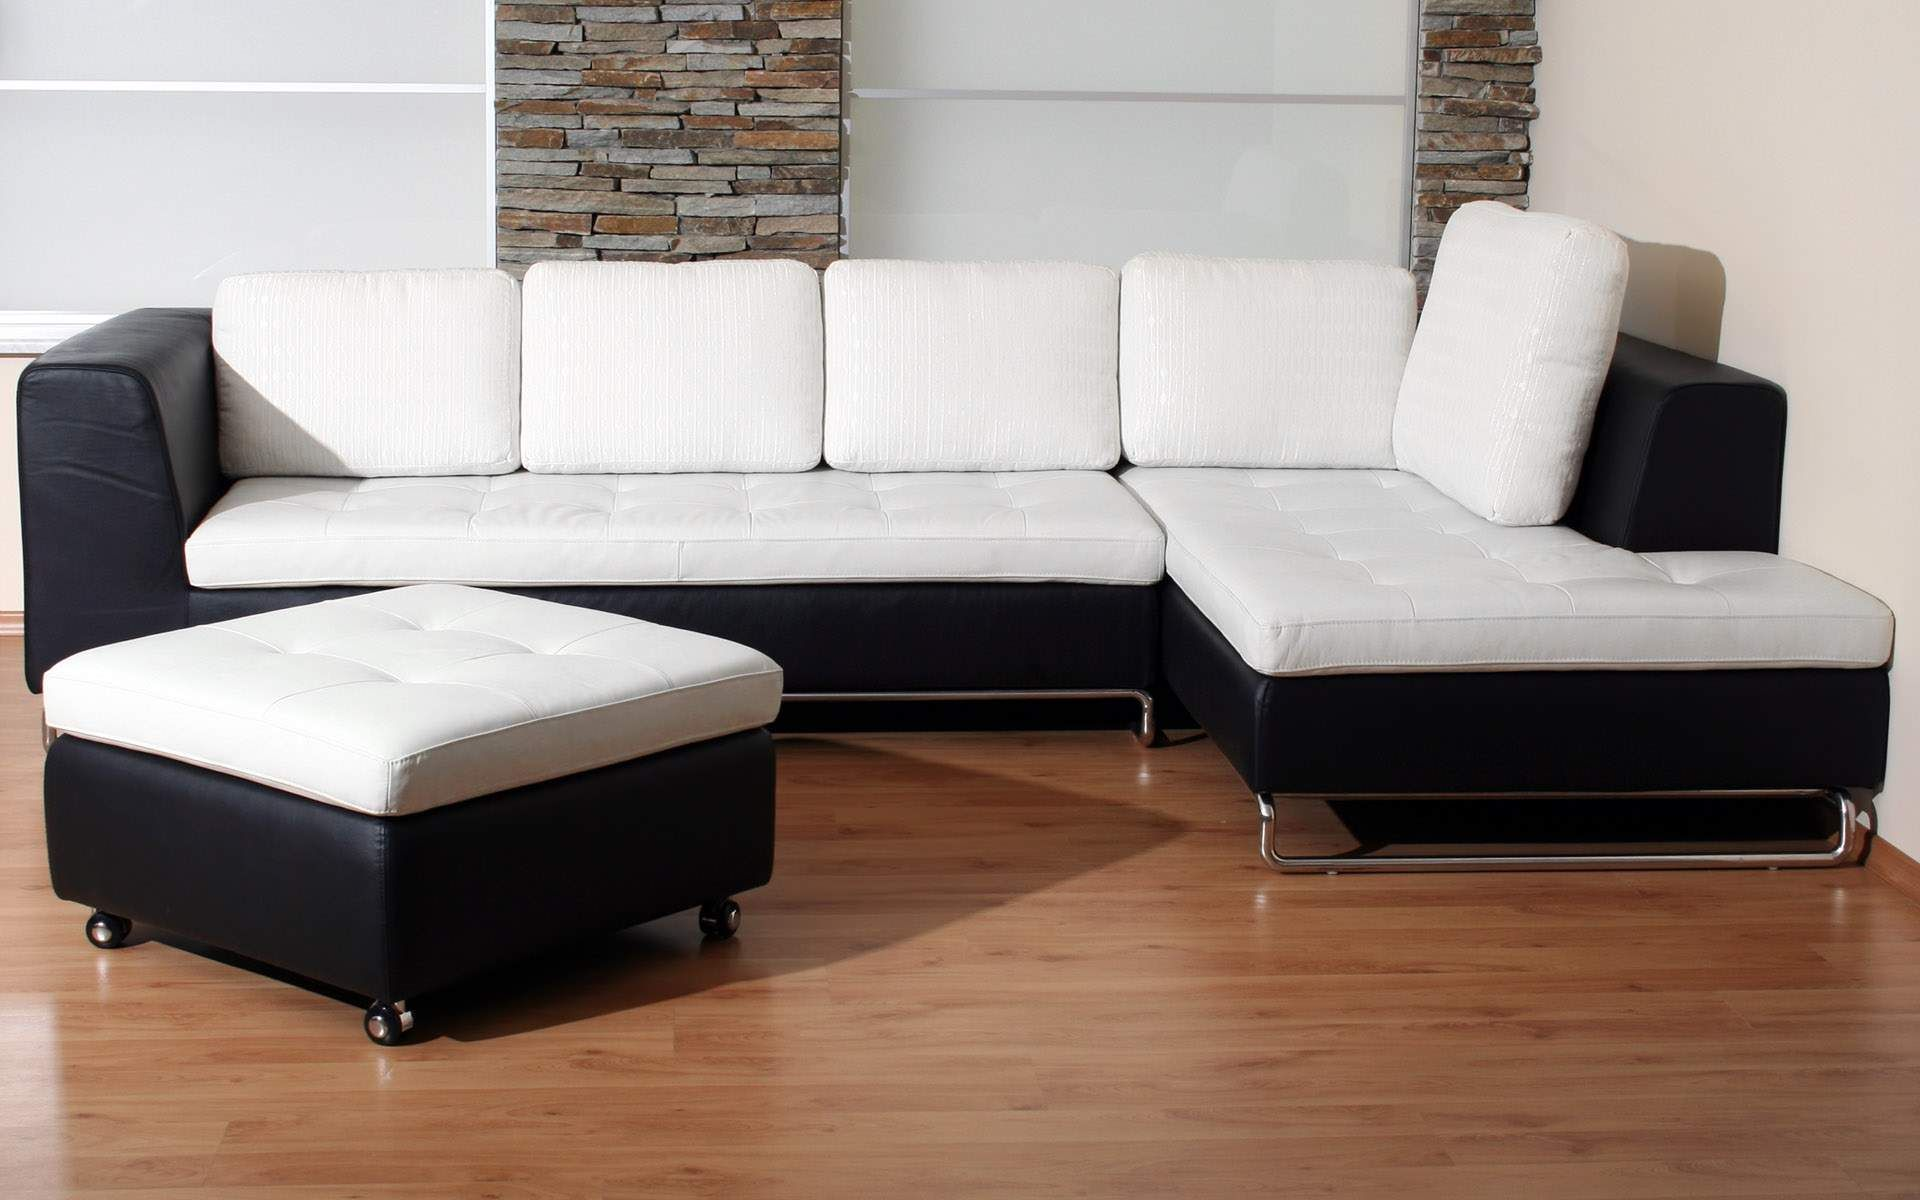 House Sofa Designs